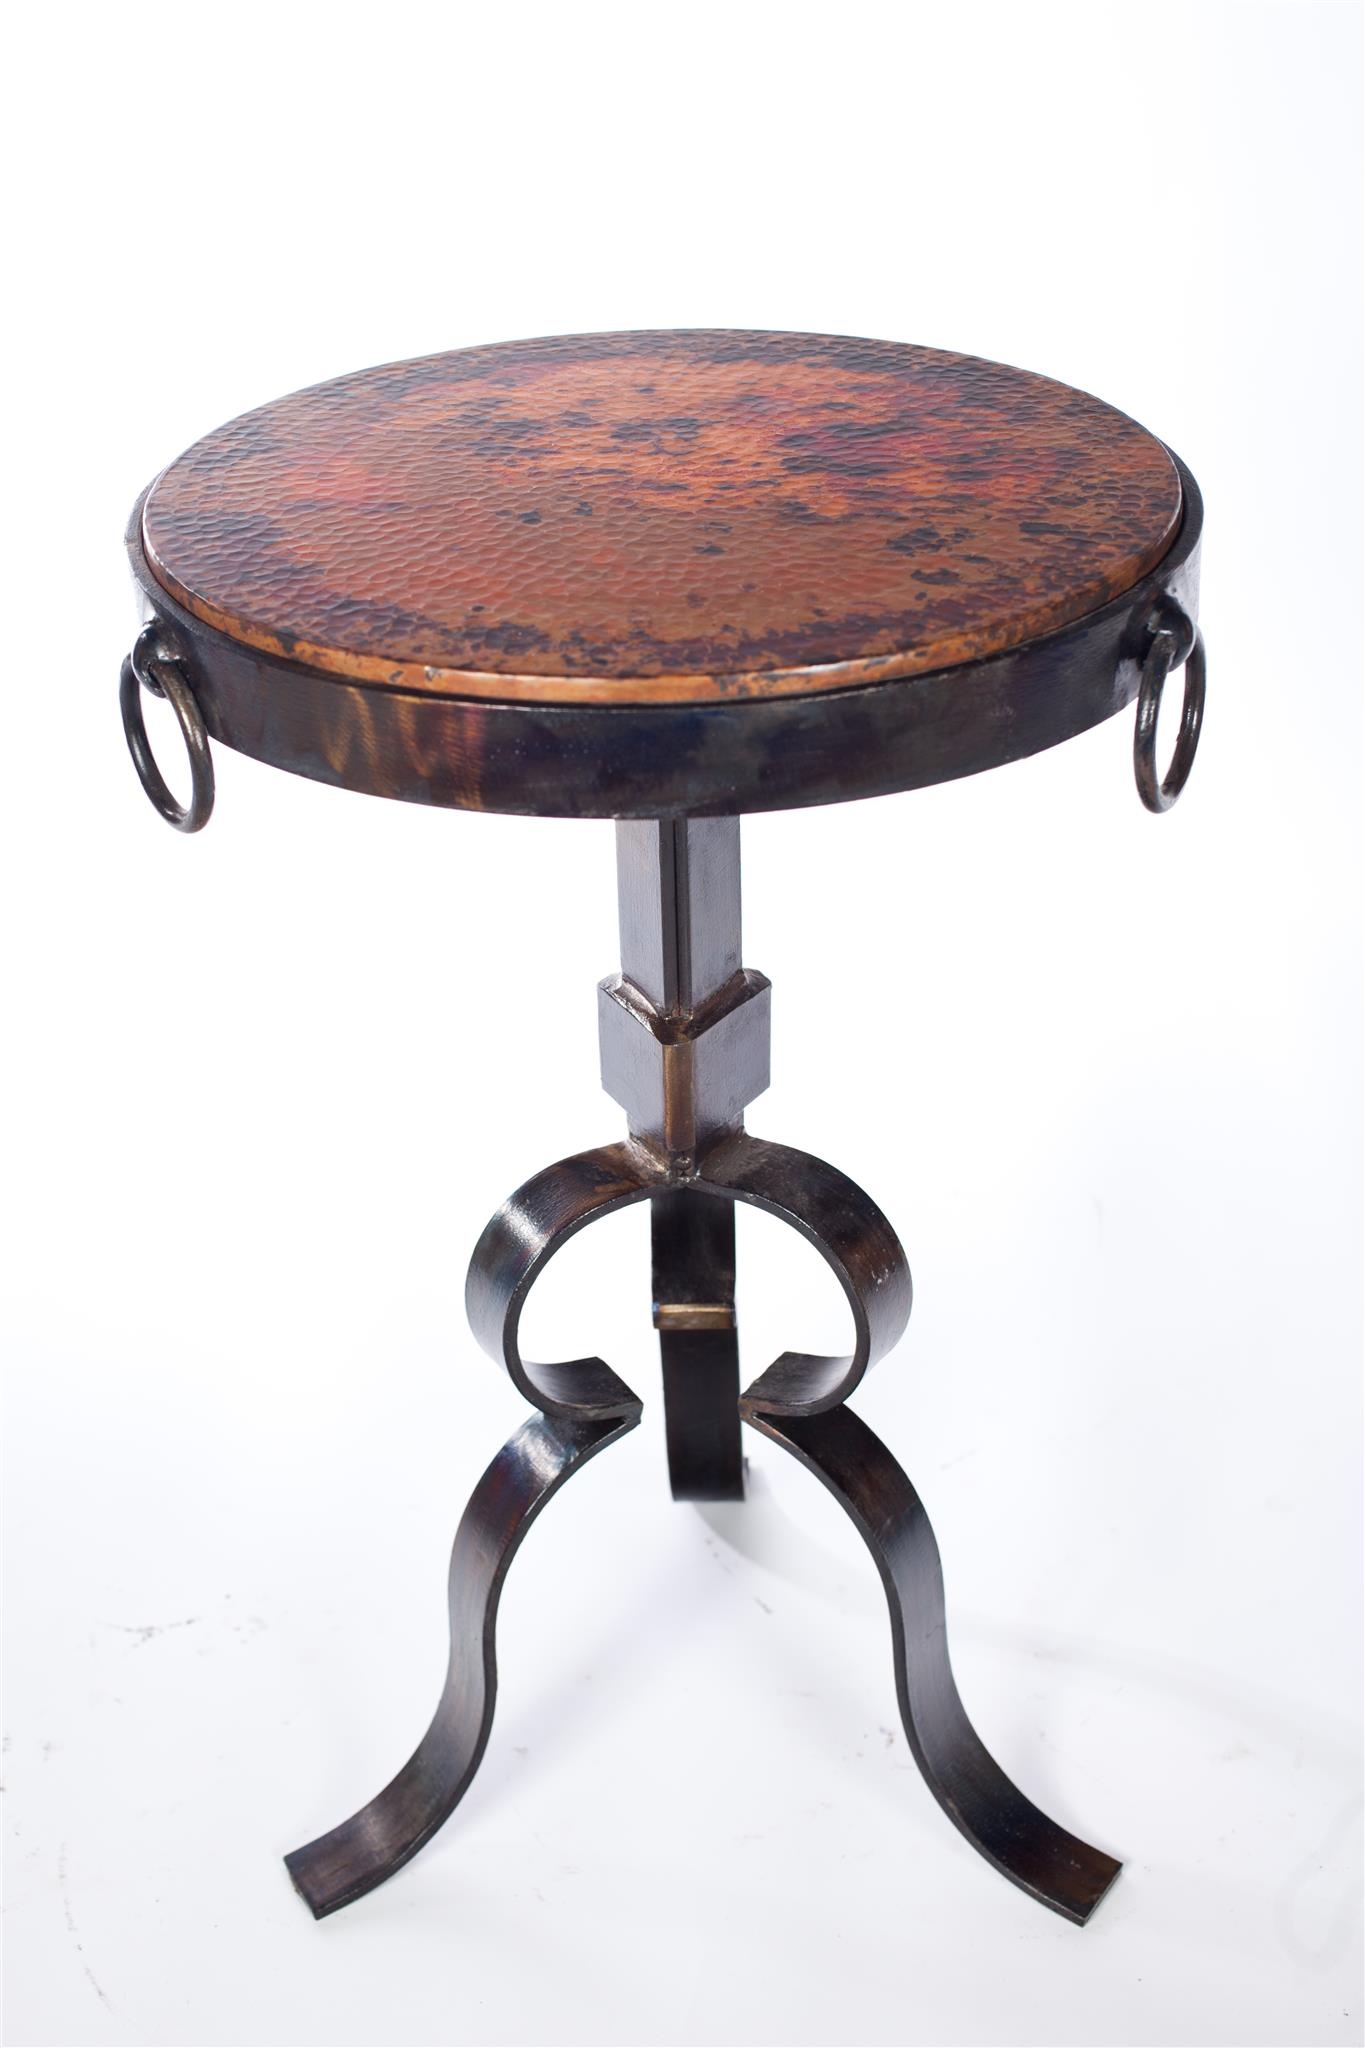 round iron accent table with hammered copper top boulevard urban metal living oak side high bar kitchen huge wall clock crate white sofa target dining room and chair sets wood end